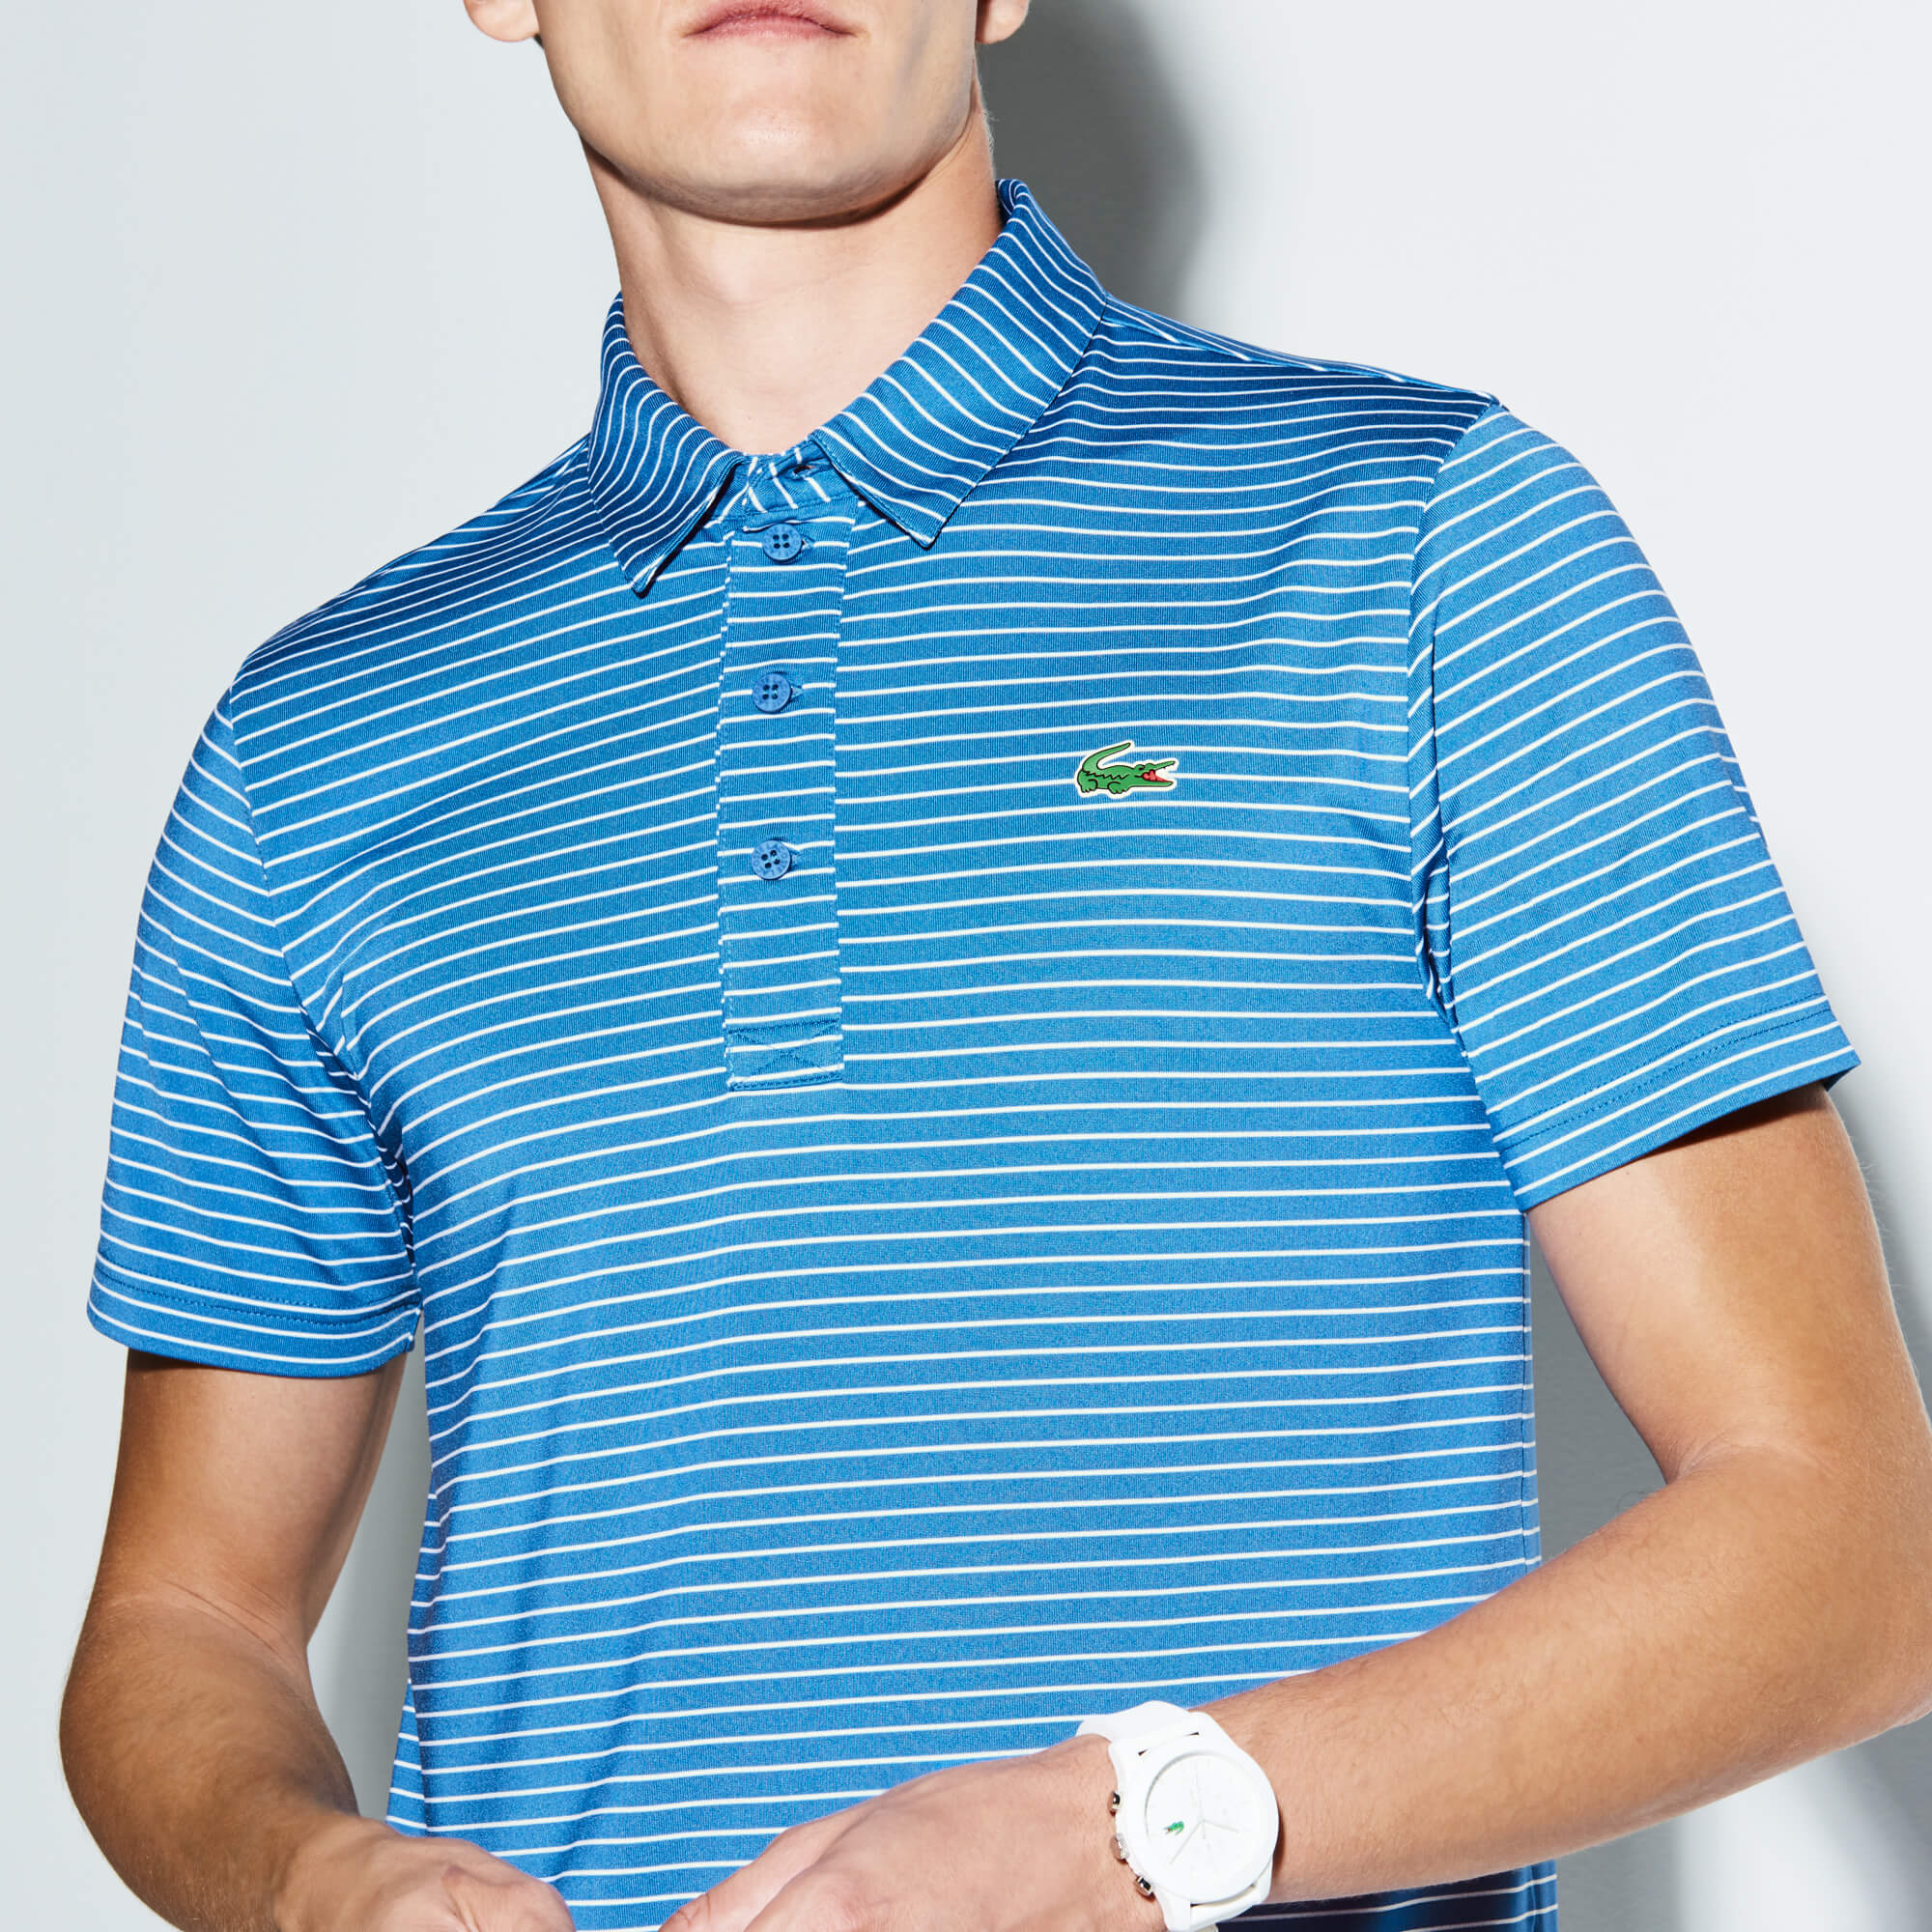 Polo Golf Lacoste SPORT in jersey stretch tecnico a righe